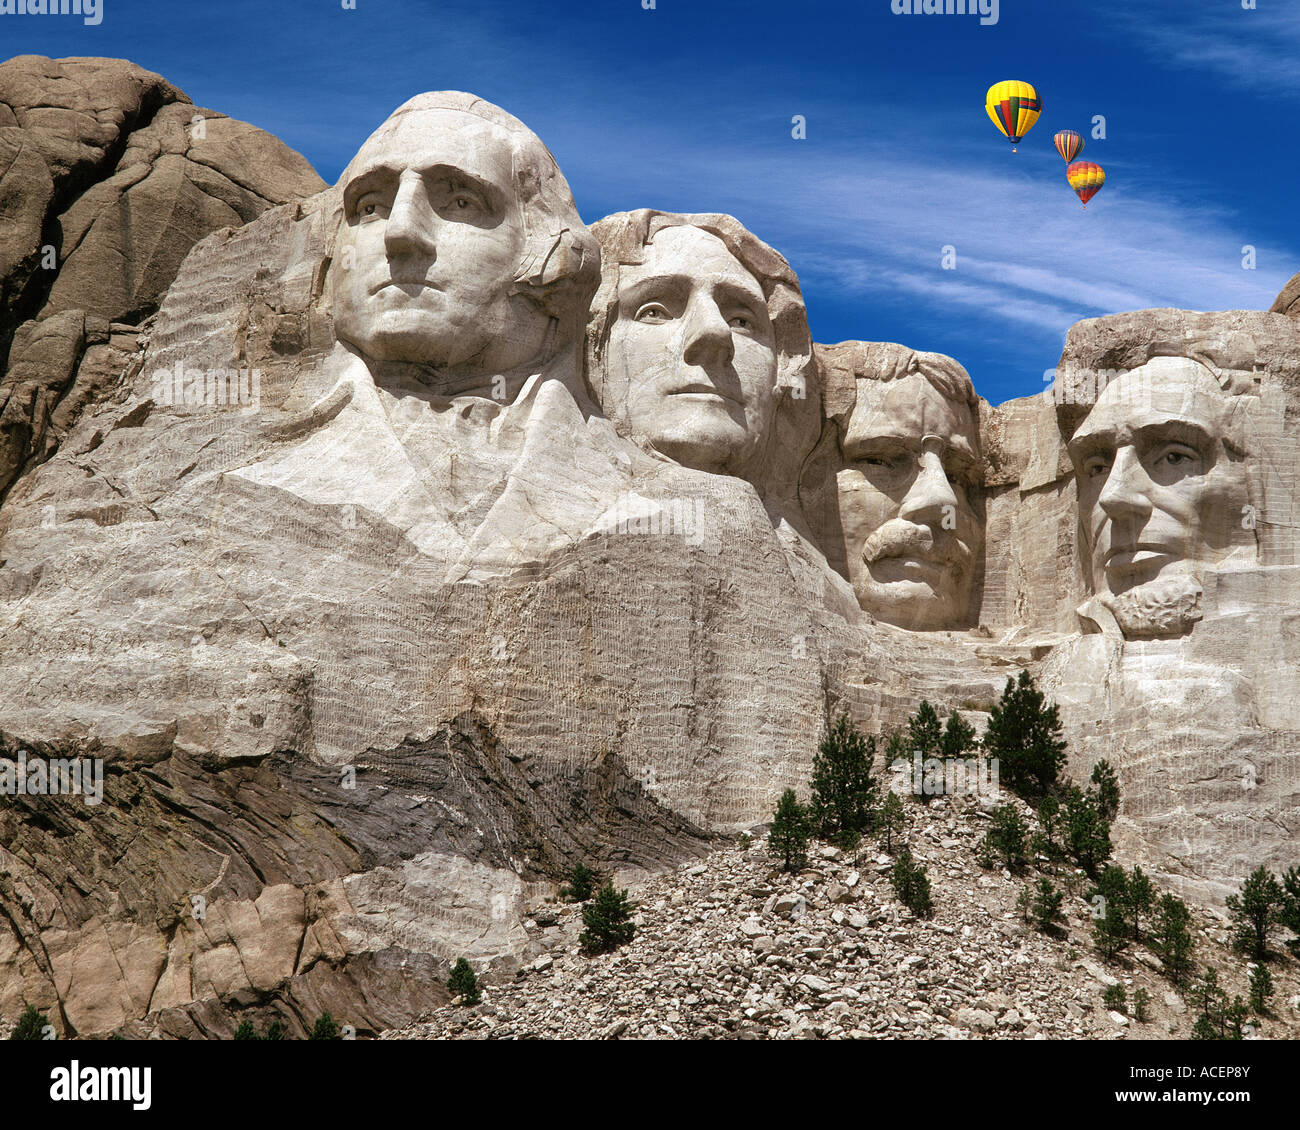 USA - SOUTH DAKOTA:  Mount Rushmore National Memorial - Stock Image